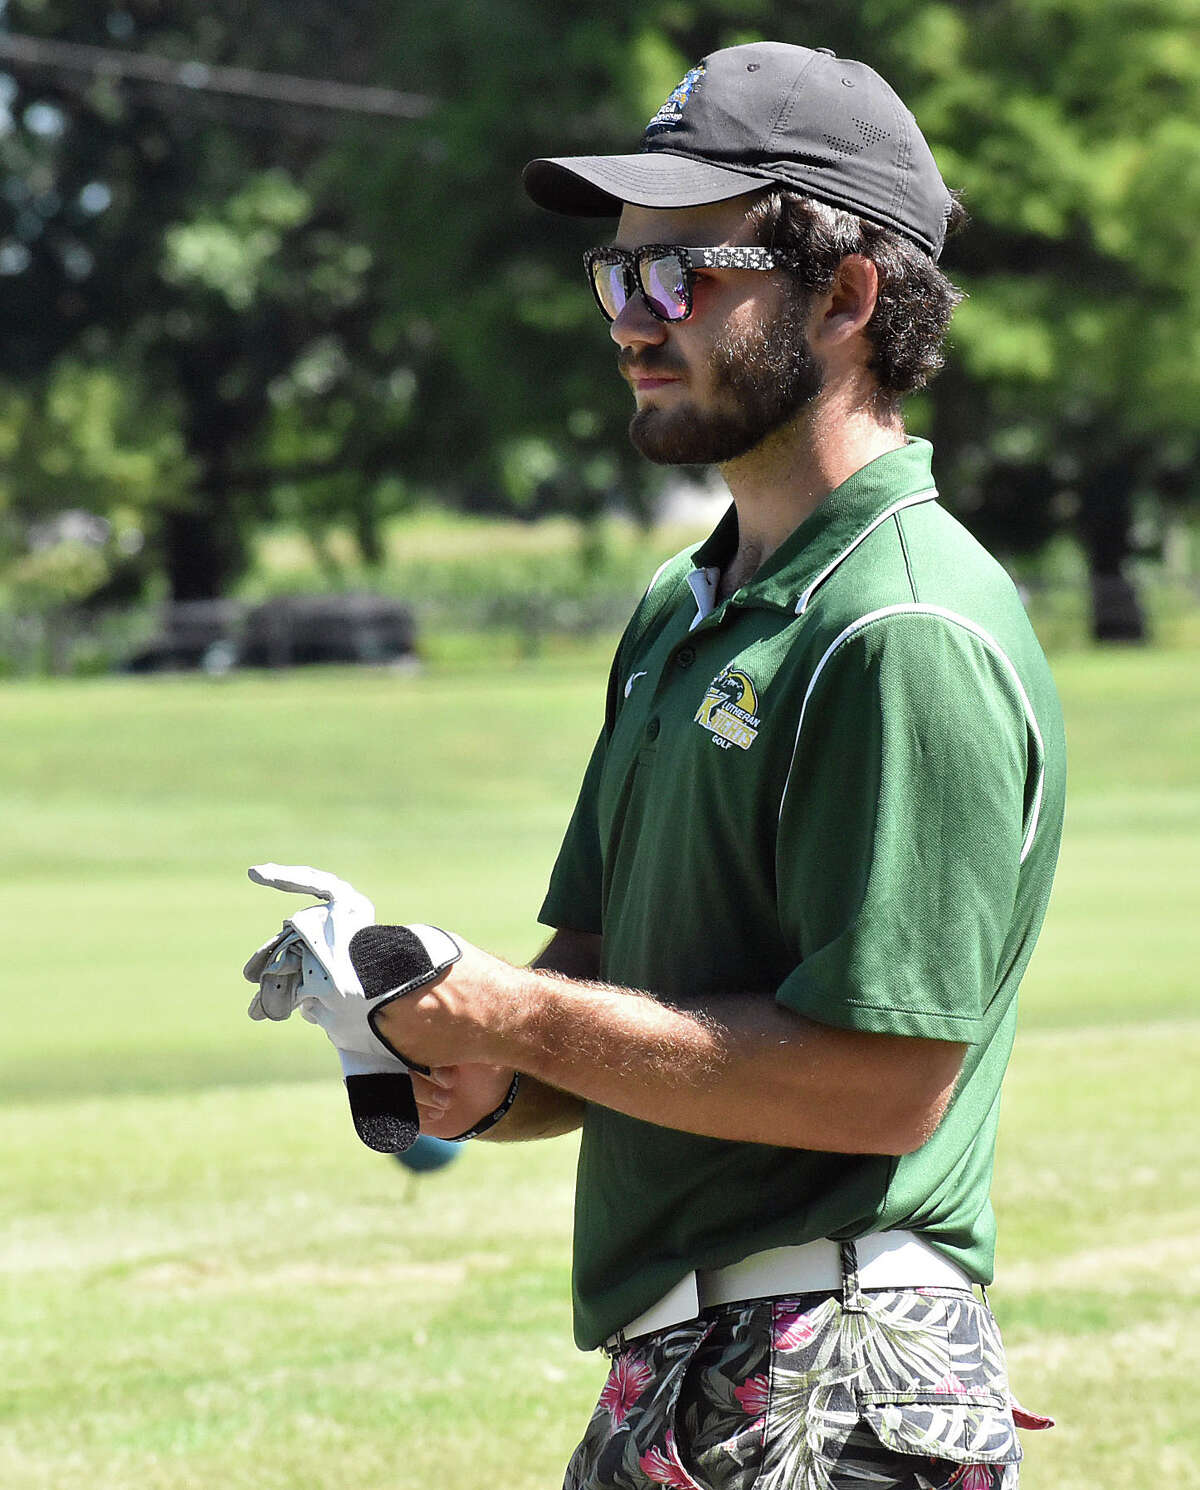 Metro-East Lutheran's Antonio Ybarra scans a hole at Belk Park Golf Course during the Madison County Tournament in August.